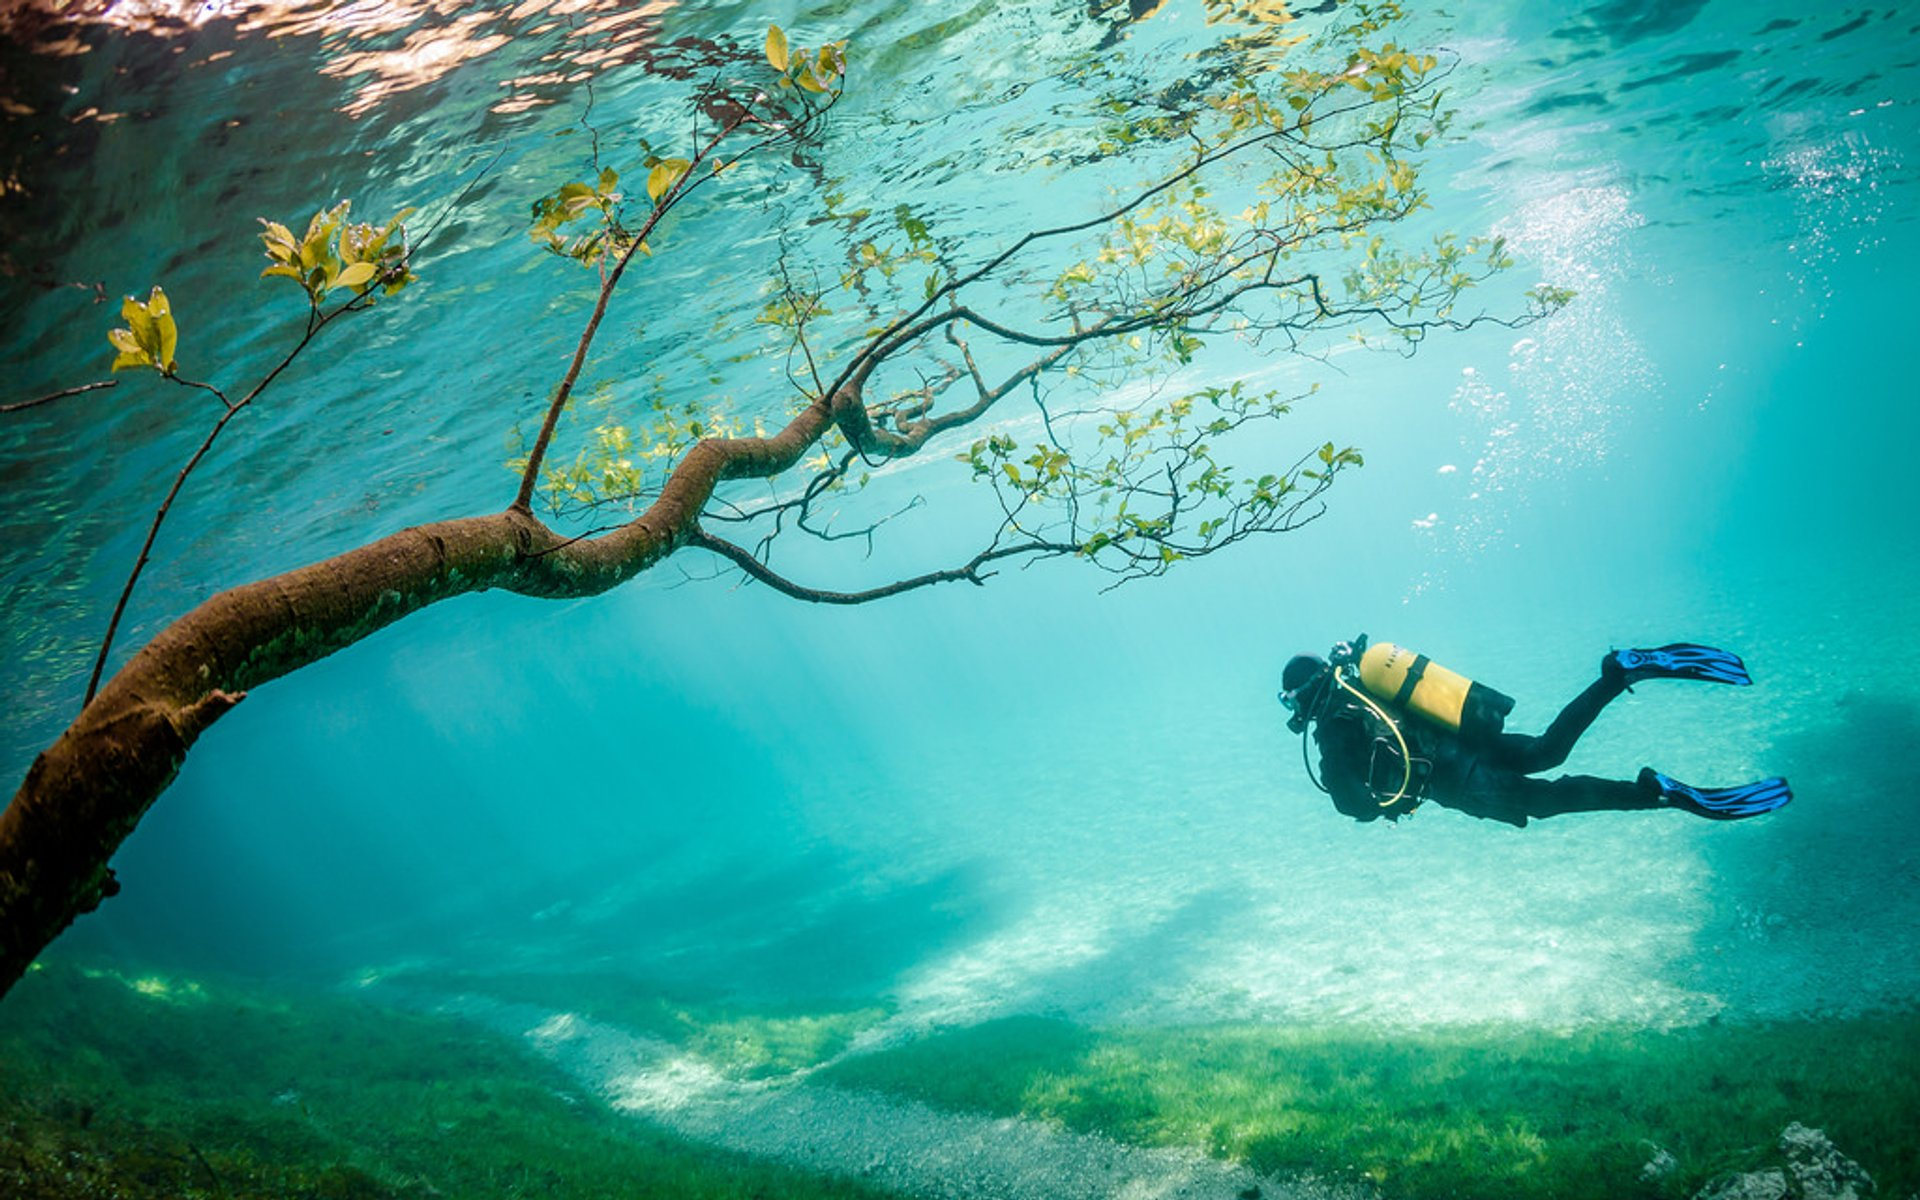 Best time to see Green Lake Park in Austria 2019